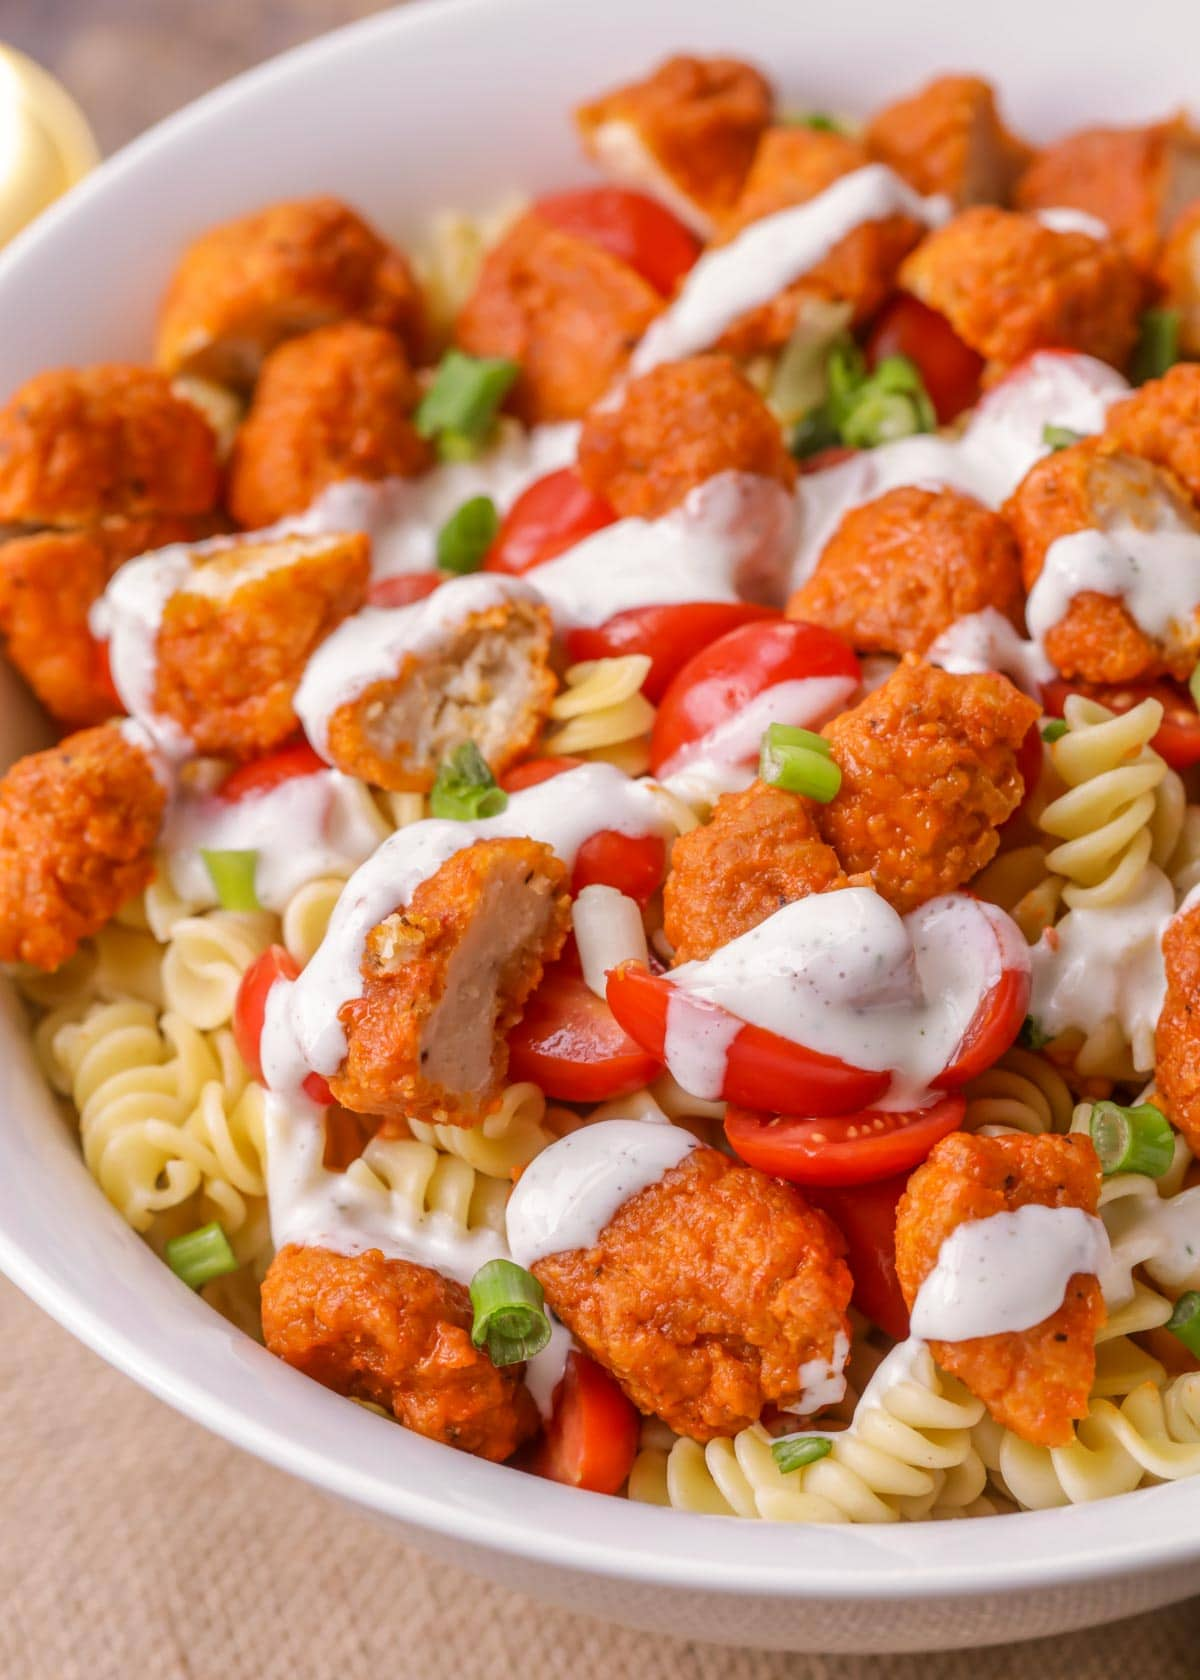 Buffalo chicken pasta salad drizzled with dressing, served in a white bowl.